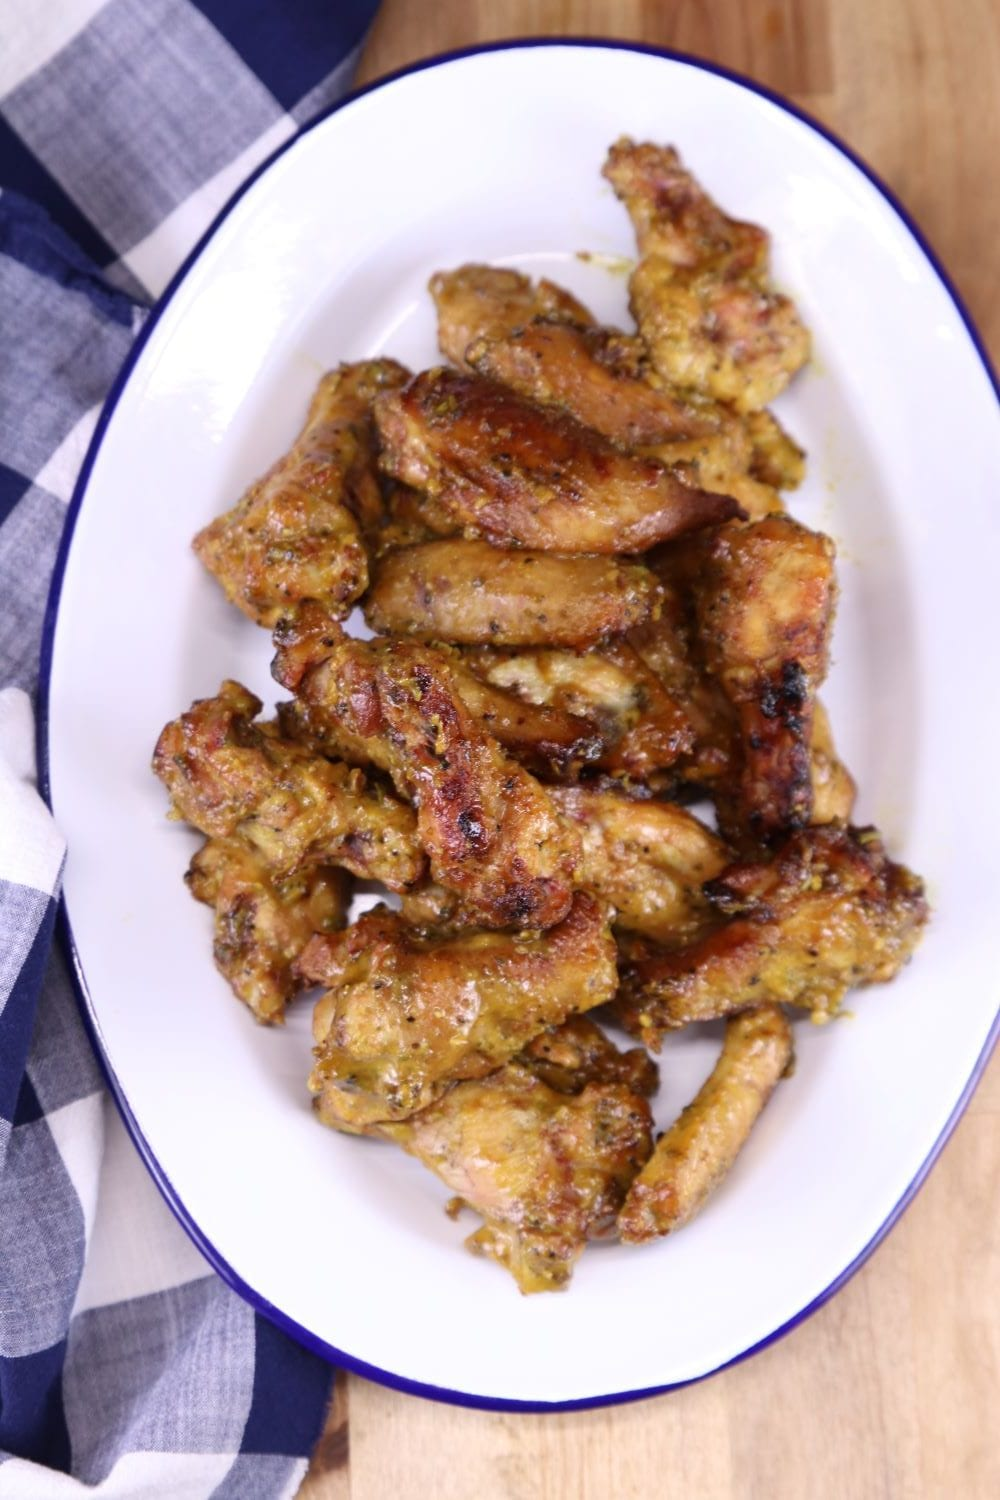 Rosemary Mustard Chicken Wings on an oval platter